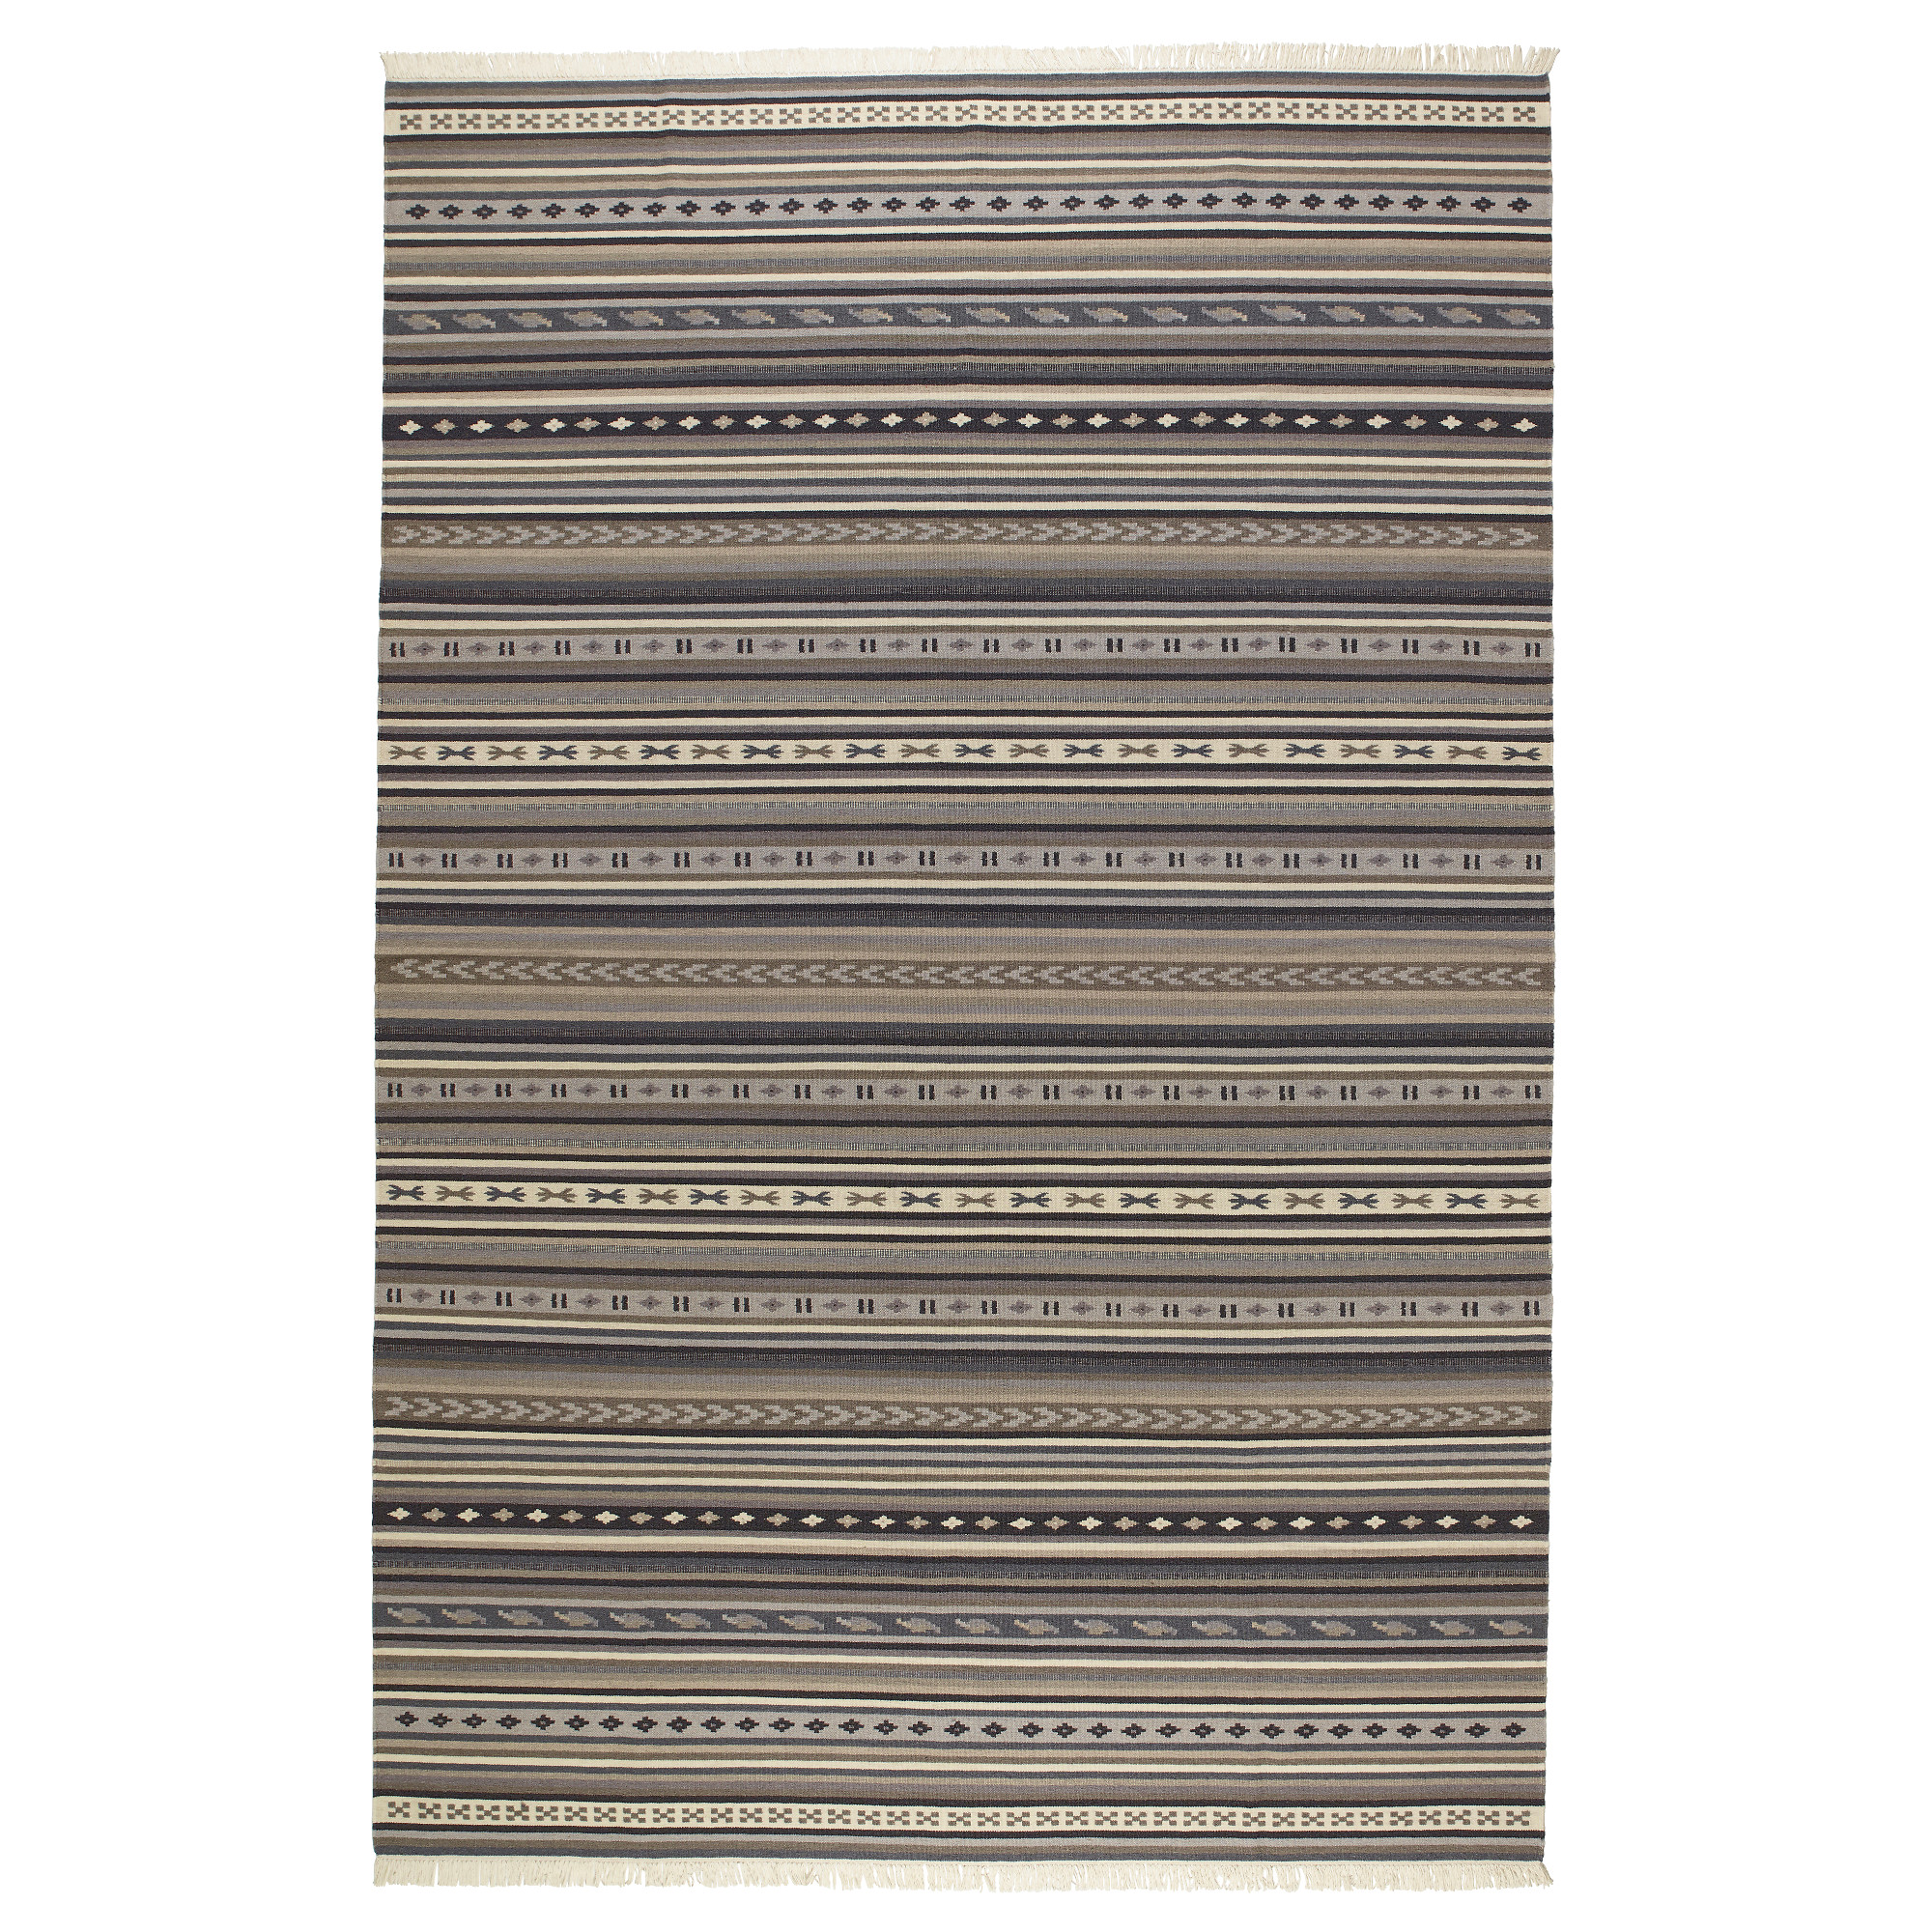 Furniture Rug Home Depot Braided Rugs Square Rugs 7x7 Cheap